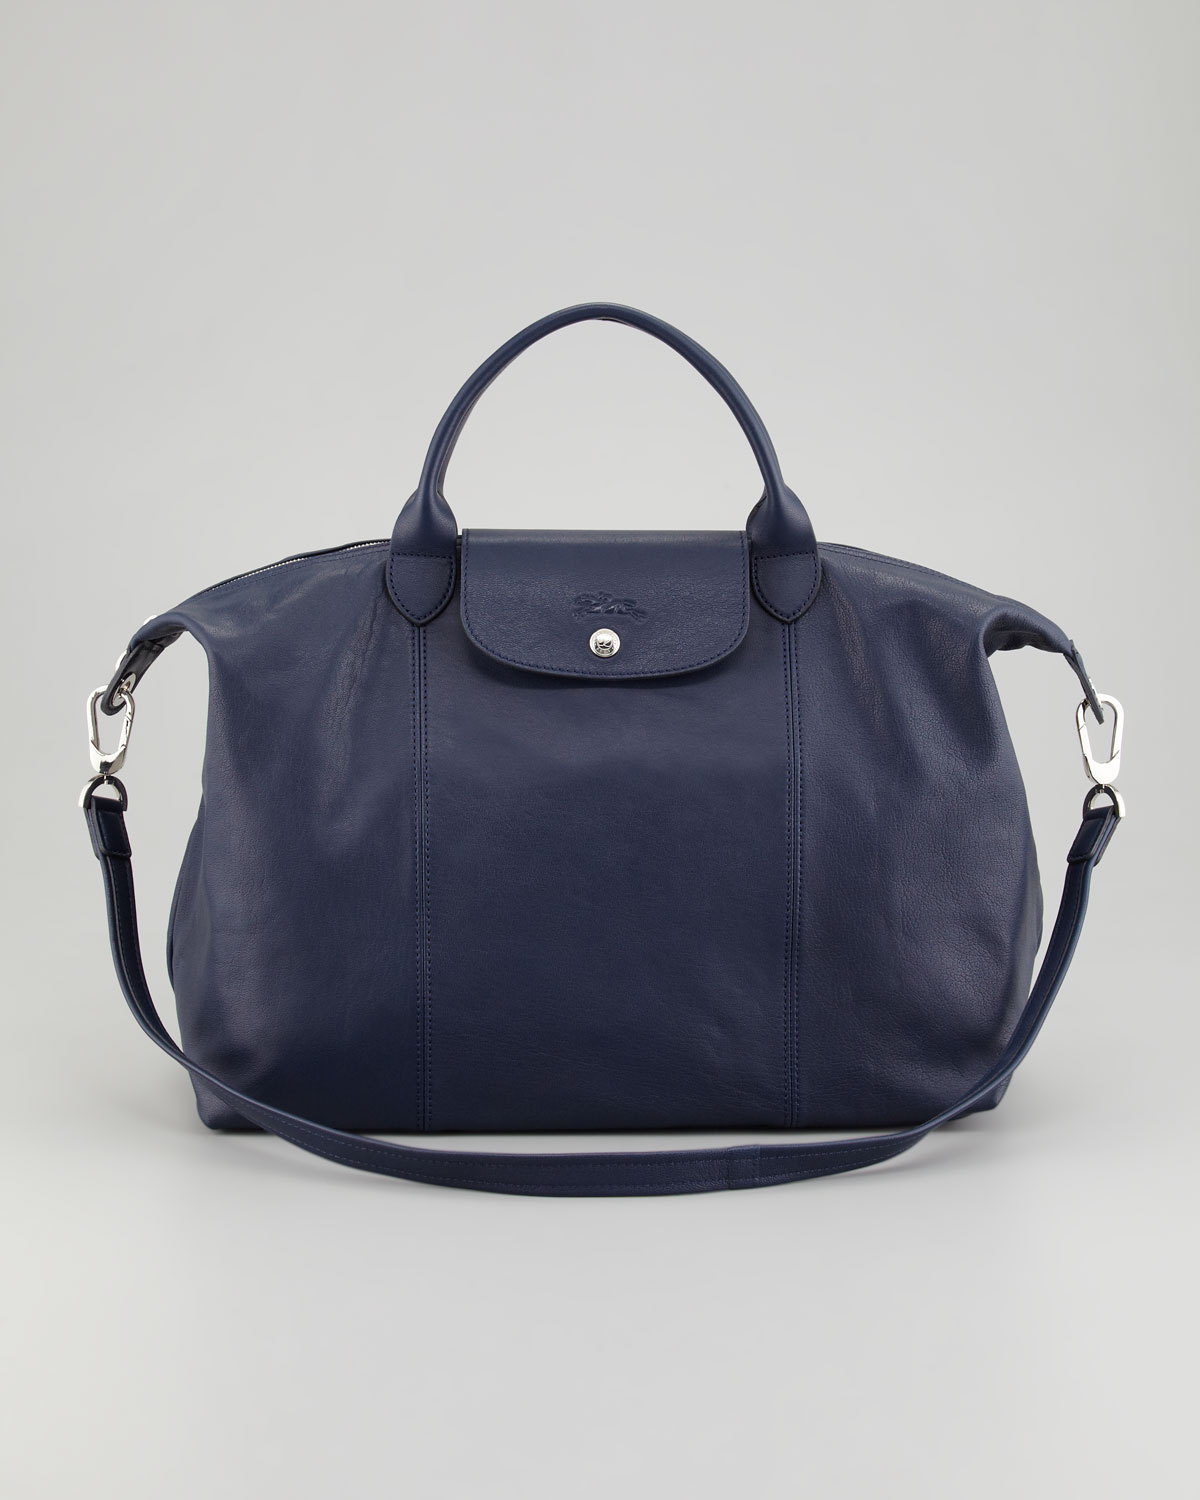 longchamp le pliage cuir large tote bag in blue lyst. Black Bedroom Furniture Sets. Home Design Ideas